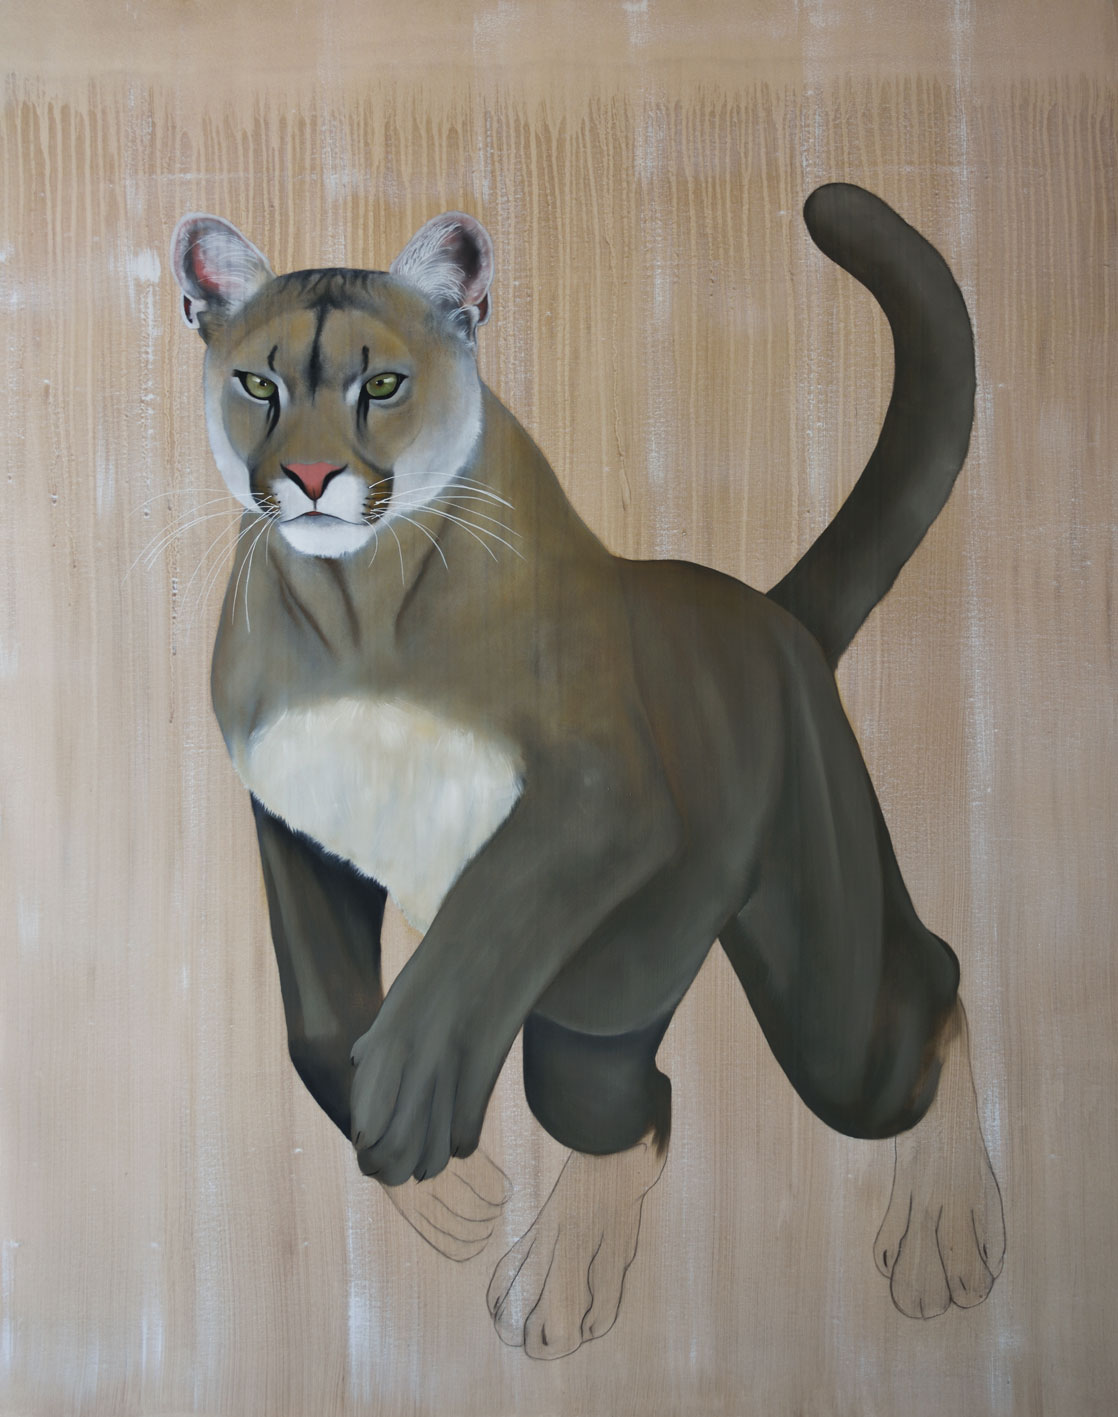 PUMA CONCOLOR CORYI COUGAR-PUMA Animal painting by Thierry Bisch pets wildlife artist painter canvas art decoration